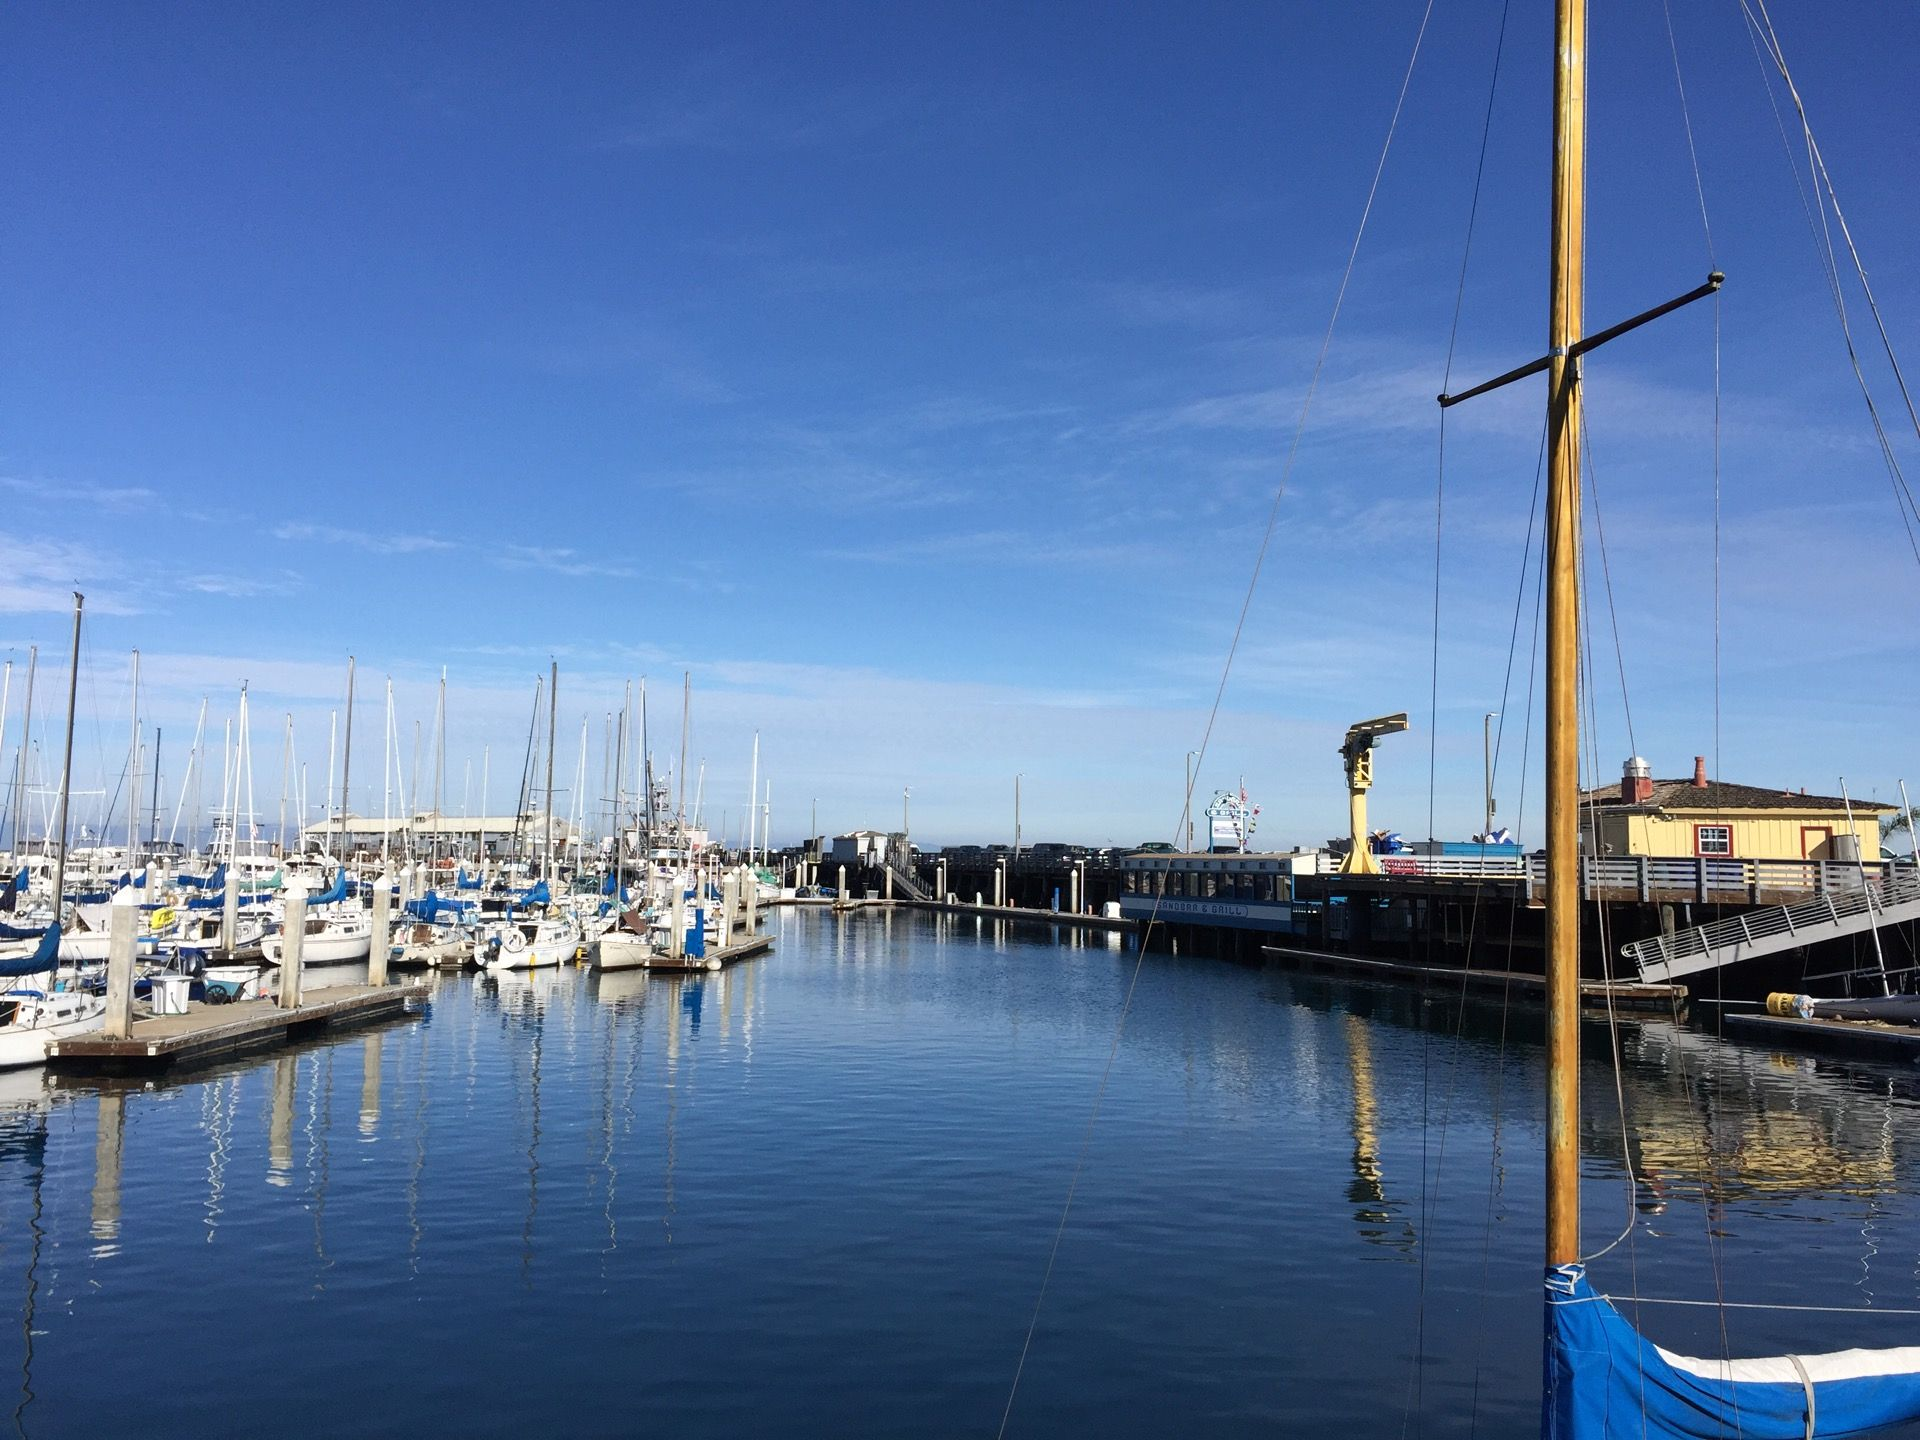 City of monterey in california with images city of